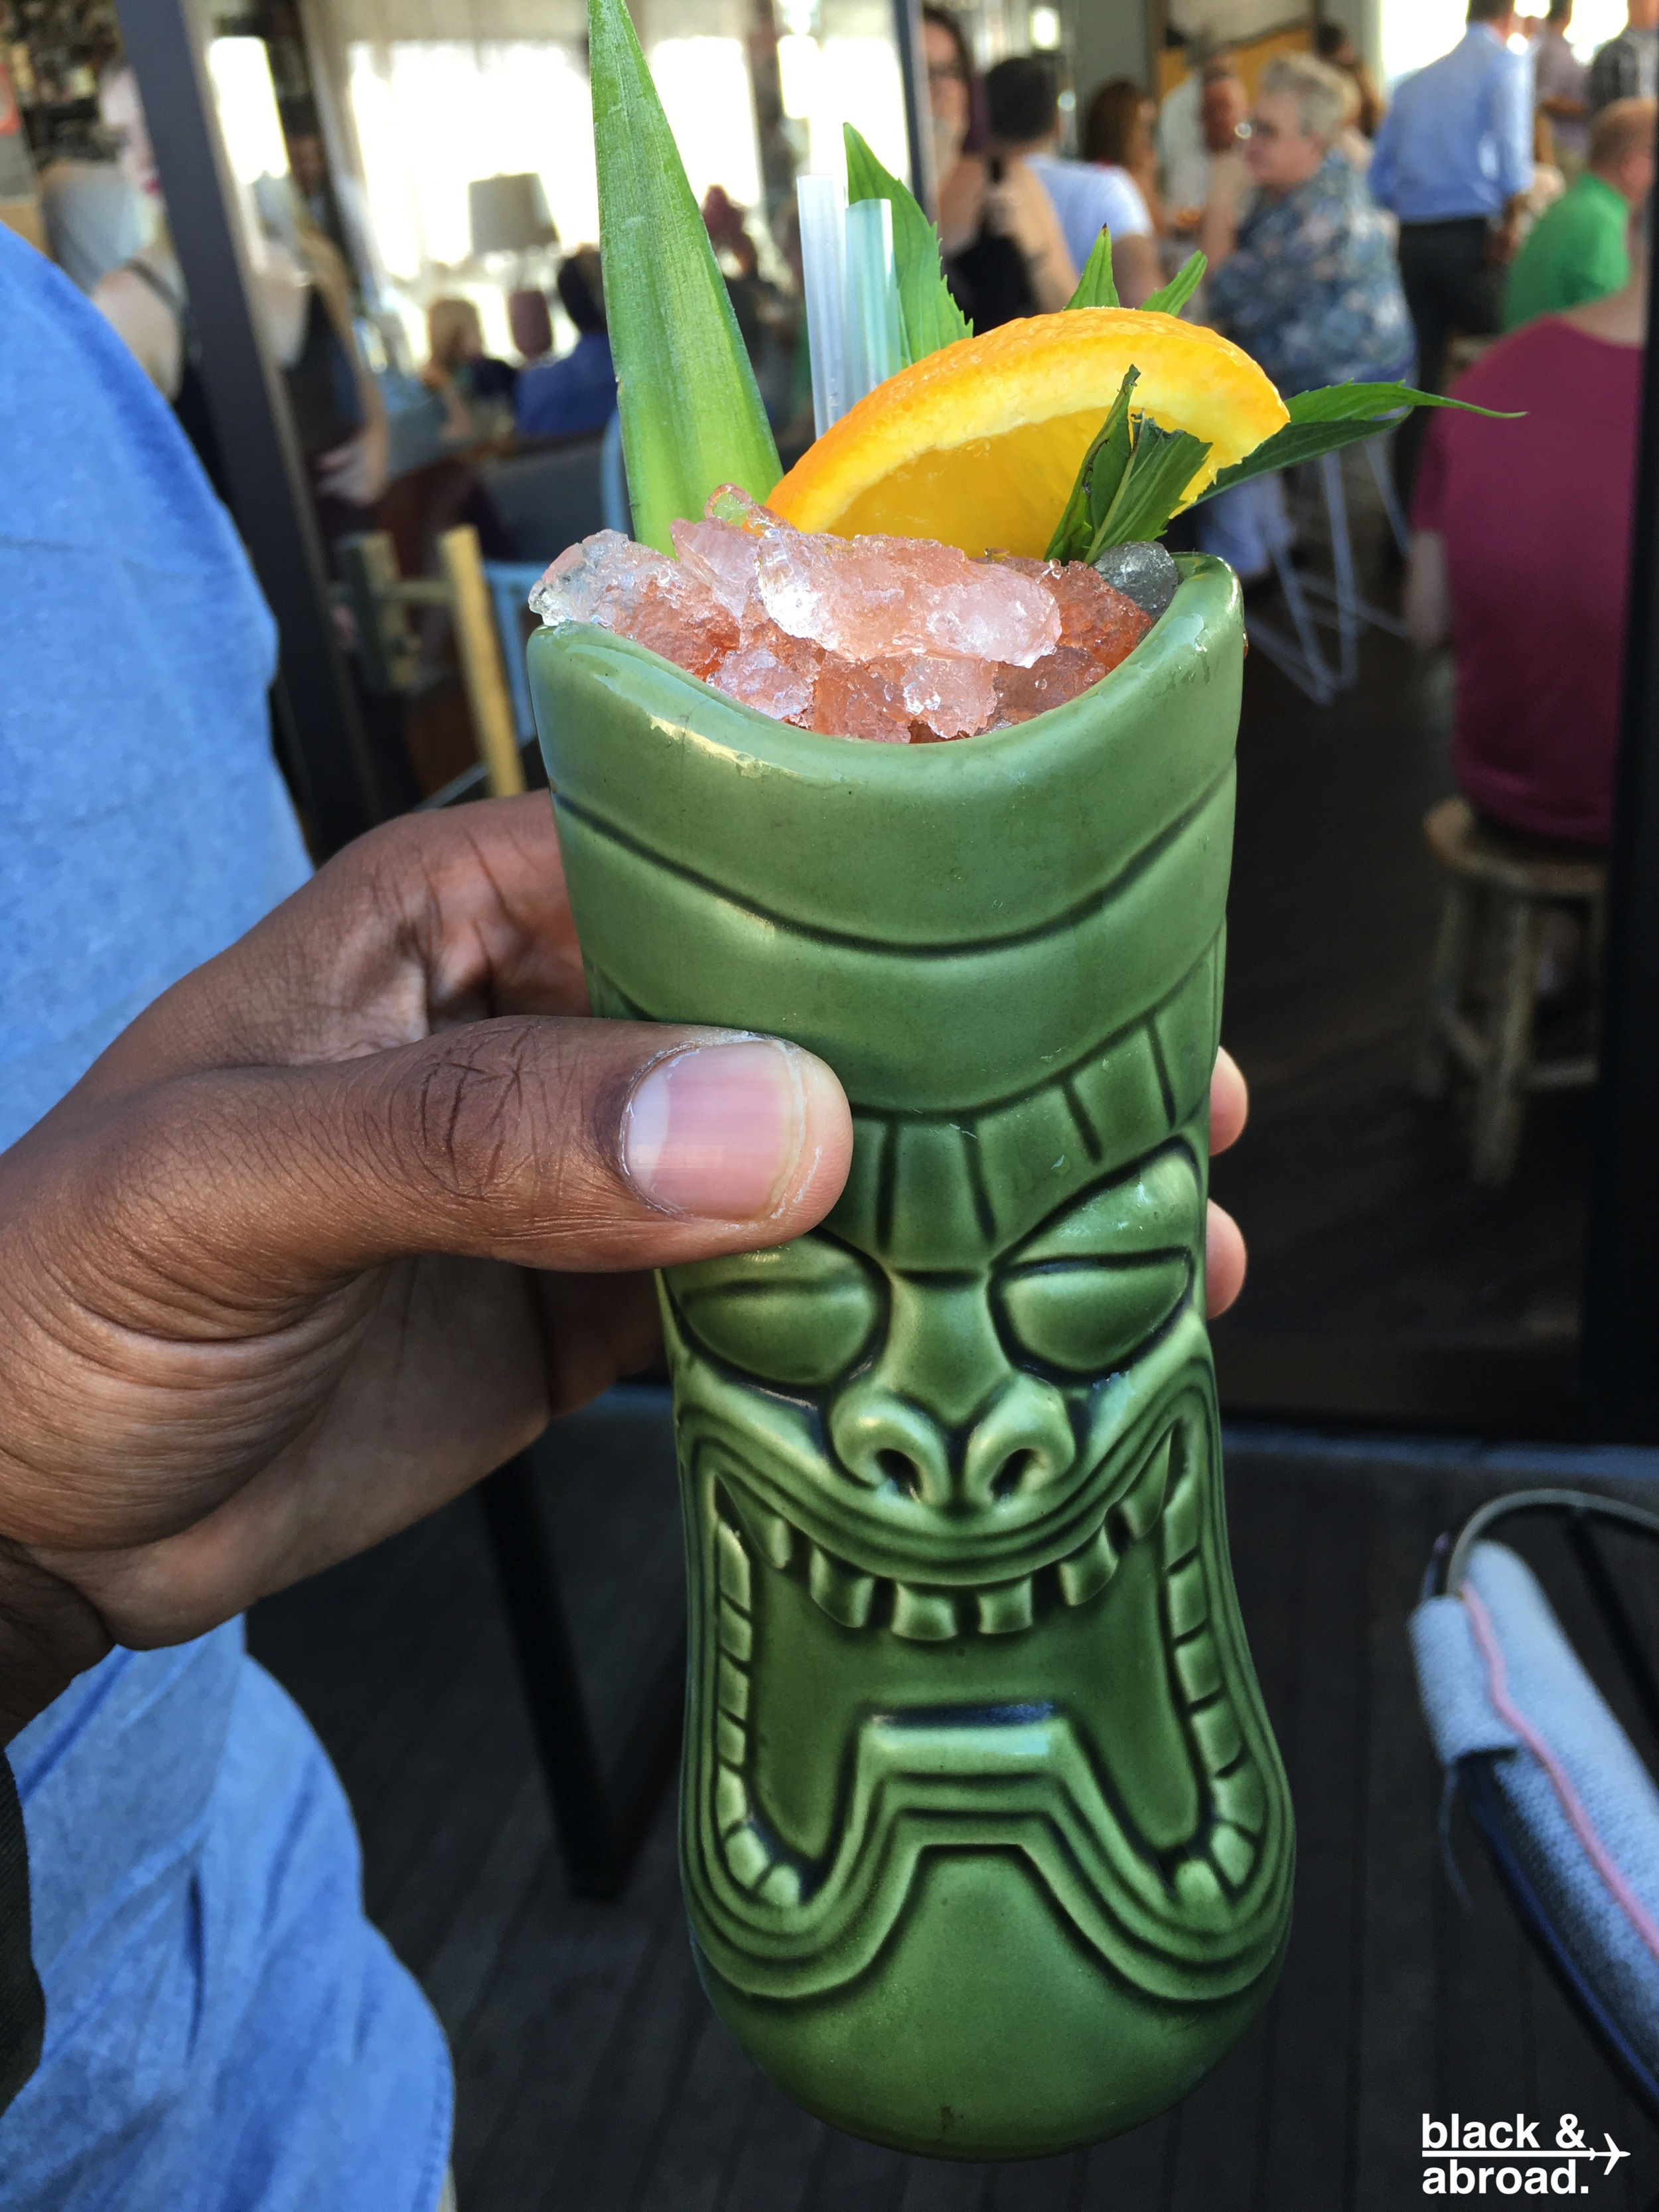 The Greg's Grog is a great way to get a nice buzz to kick off the day at Henry Deane.